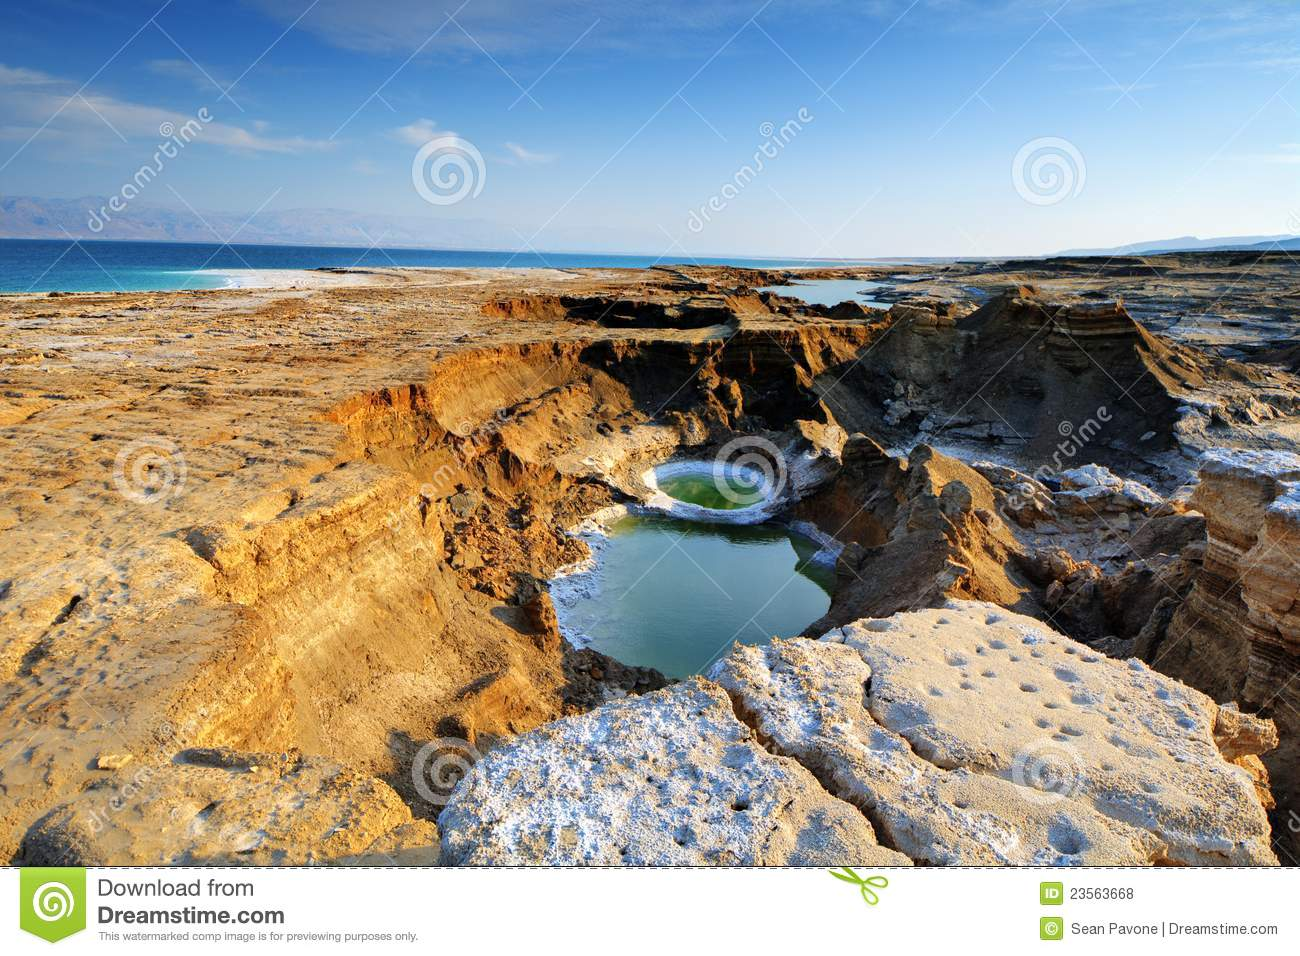 sink holes royalty free stock photos   image 23563668